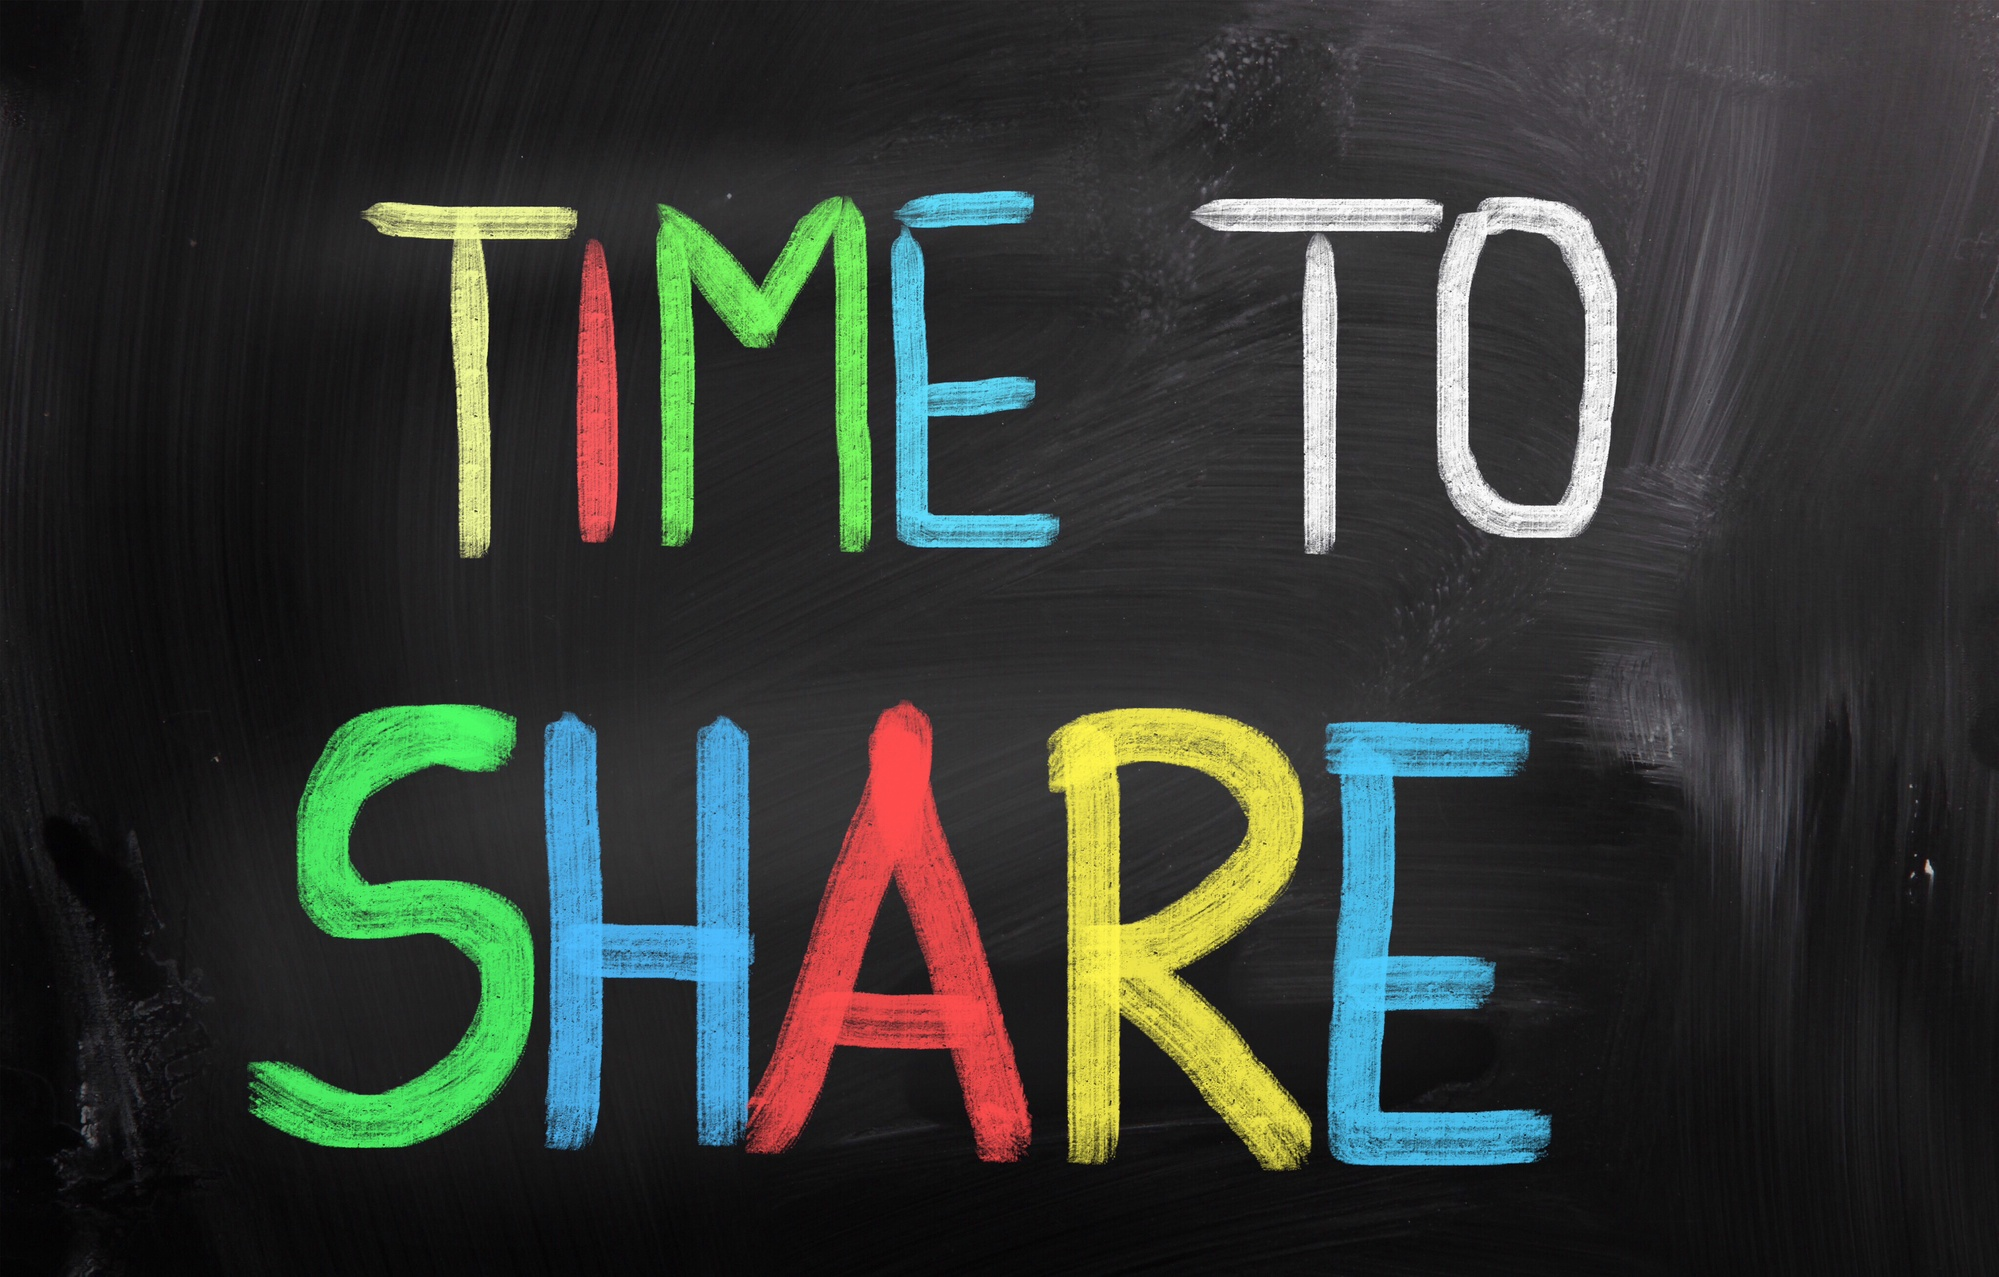 Digital Standout Yelp Partnership Time To Share Invite Your Friends.jpg